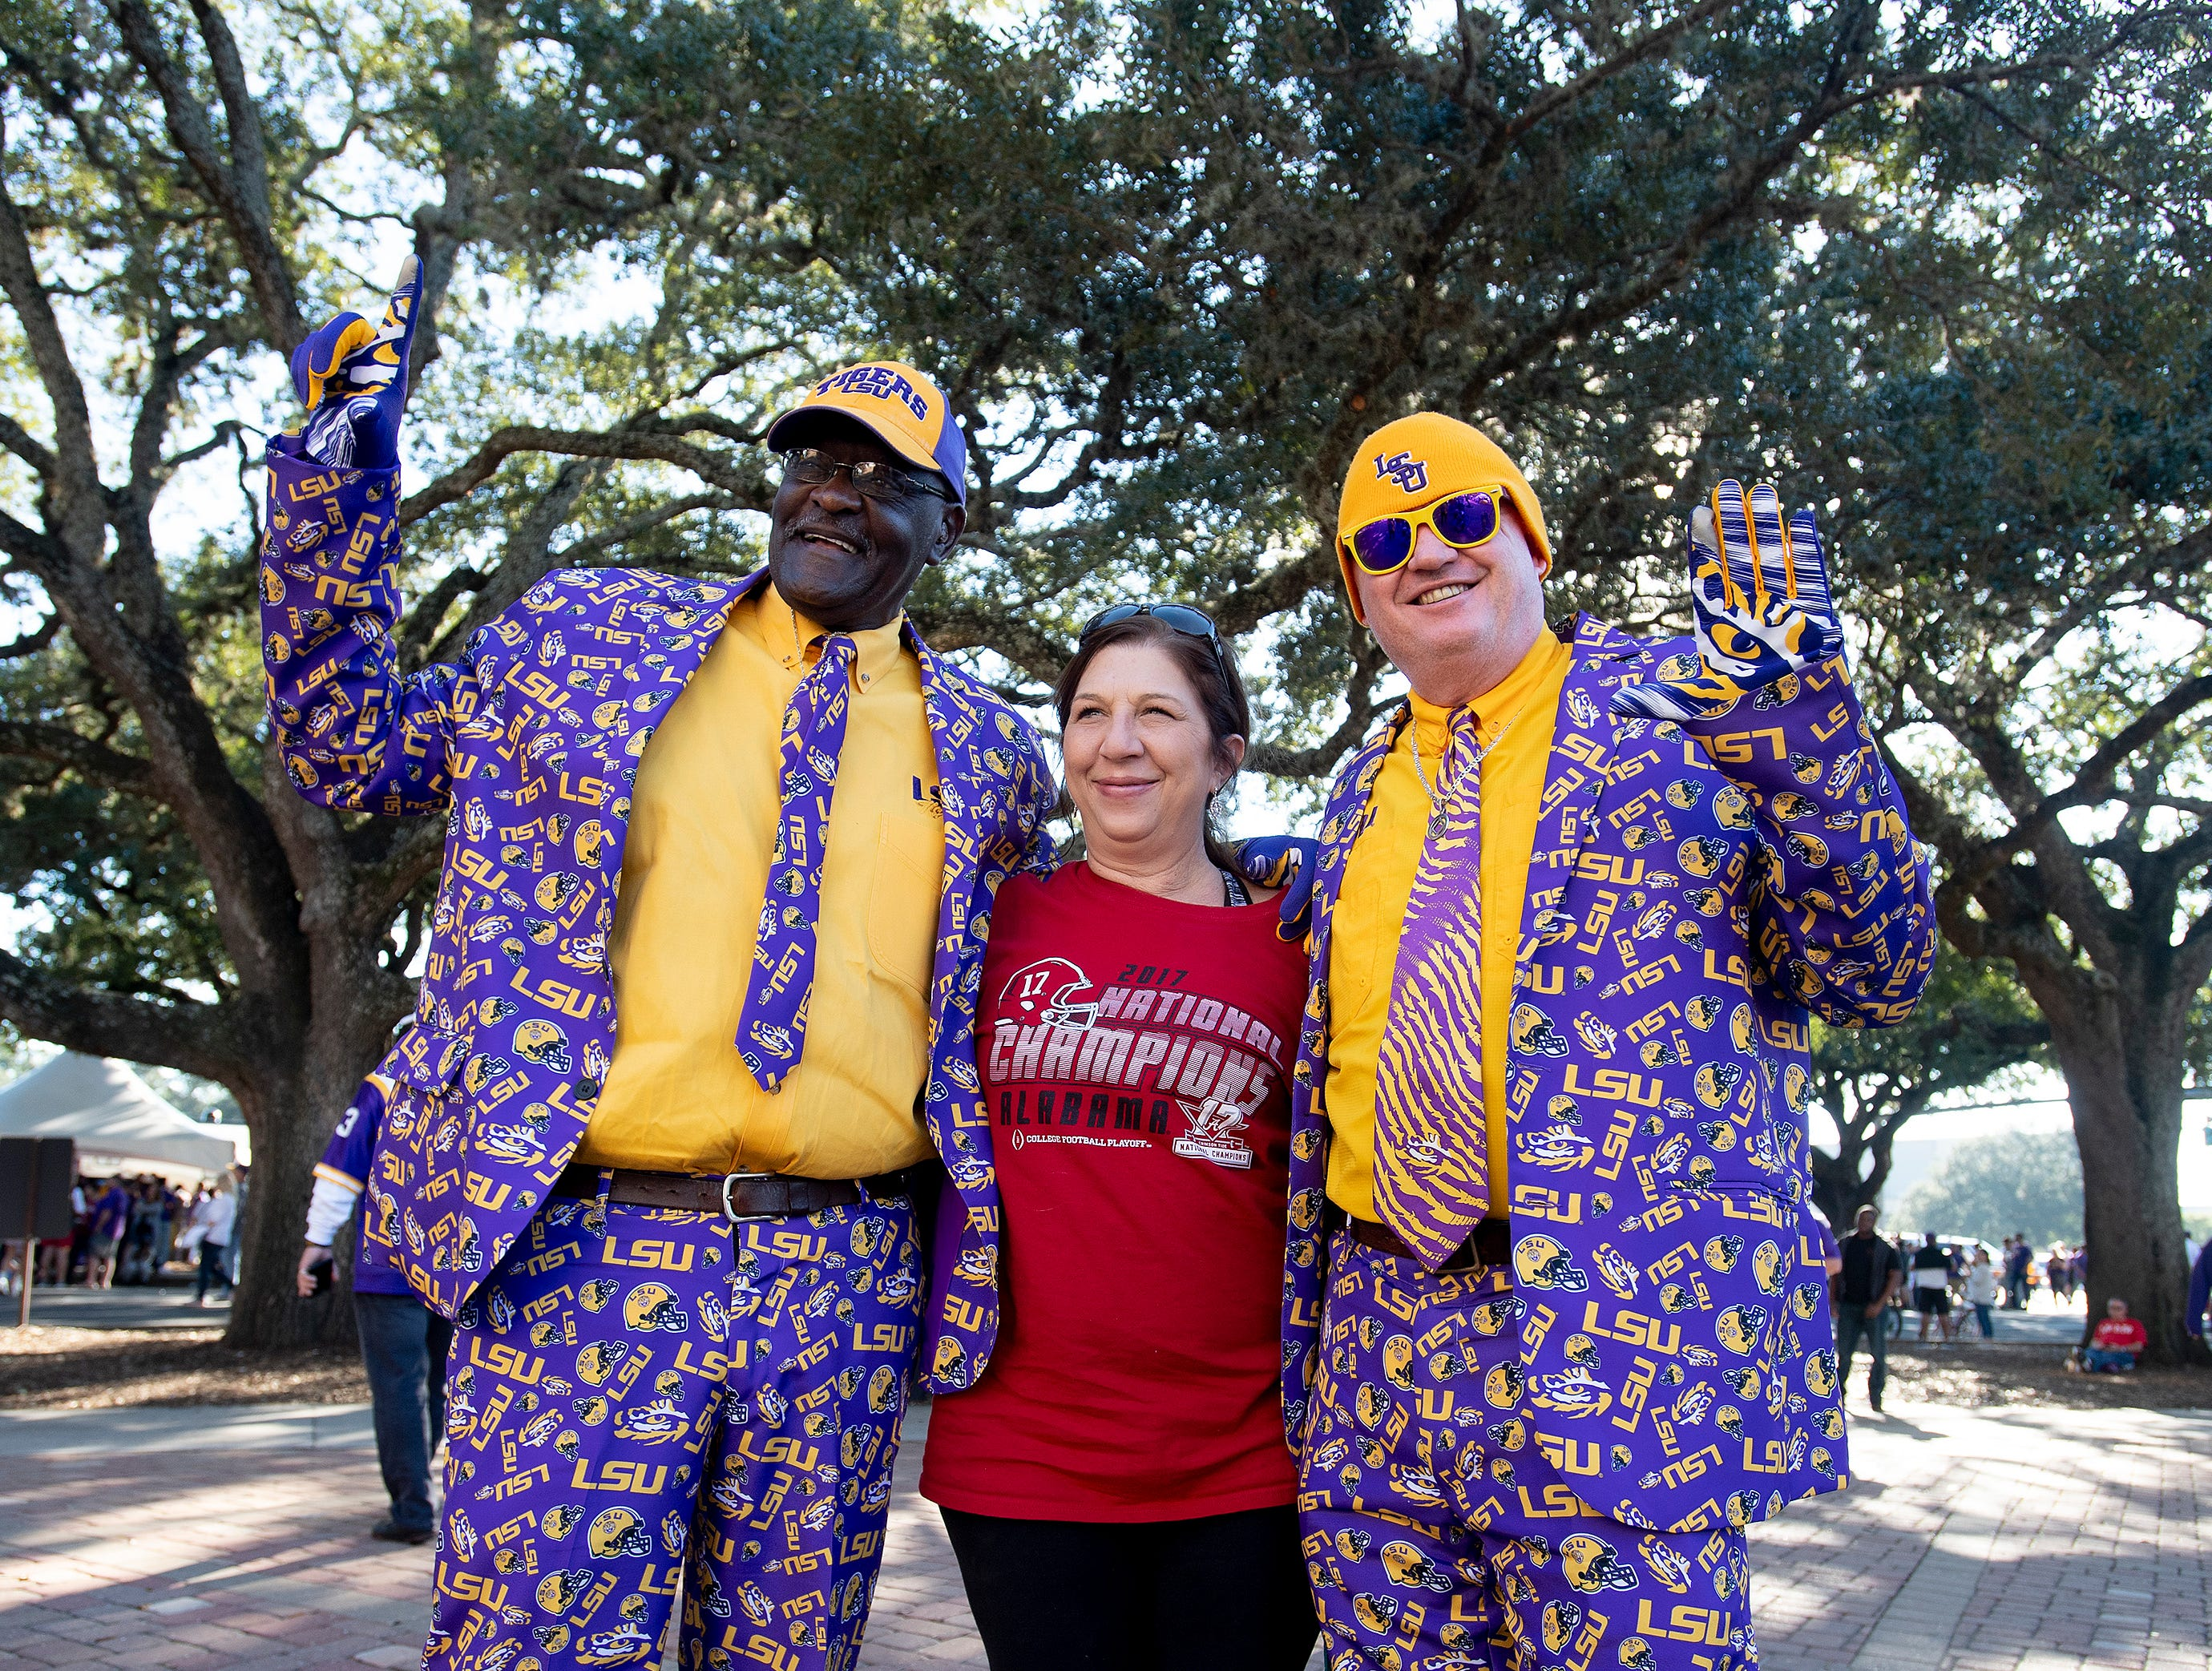 Alabama and Louisiana State fans enjoy the football atmosphere before their game at Tiger Stadium in Baton Rouge, La., on Saturday November 3, 2018.